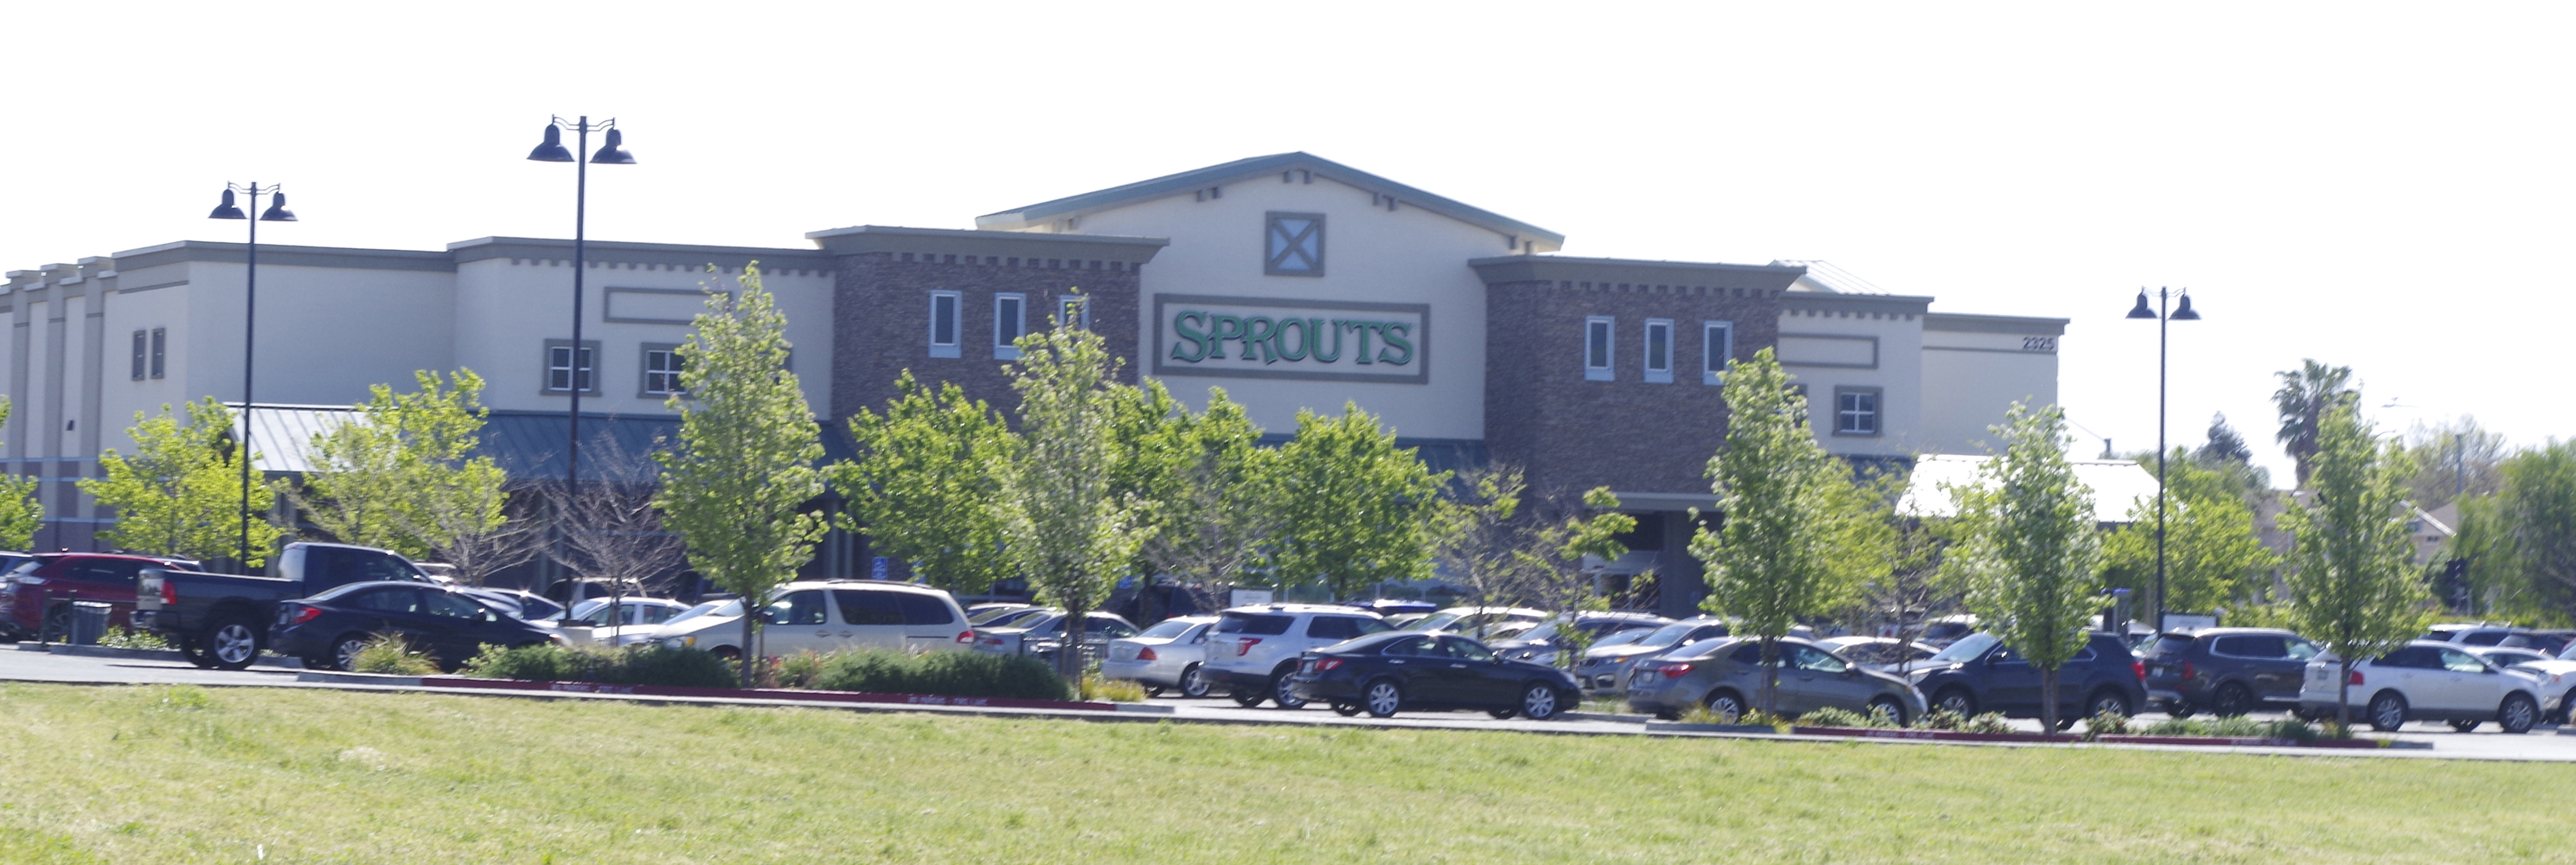 Sprouts Front of building